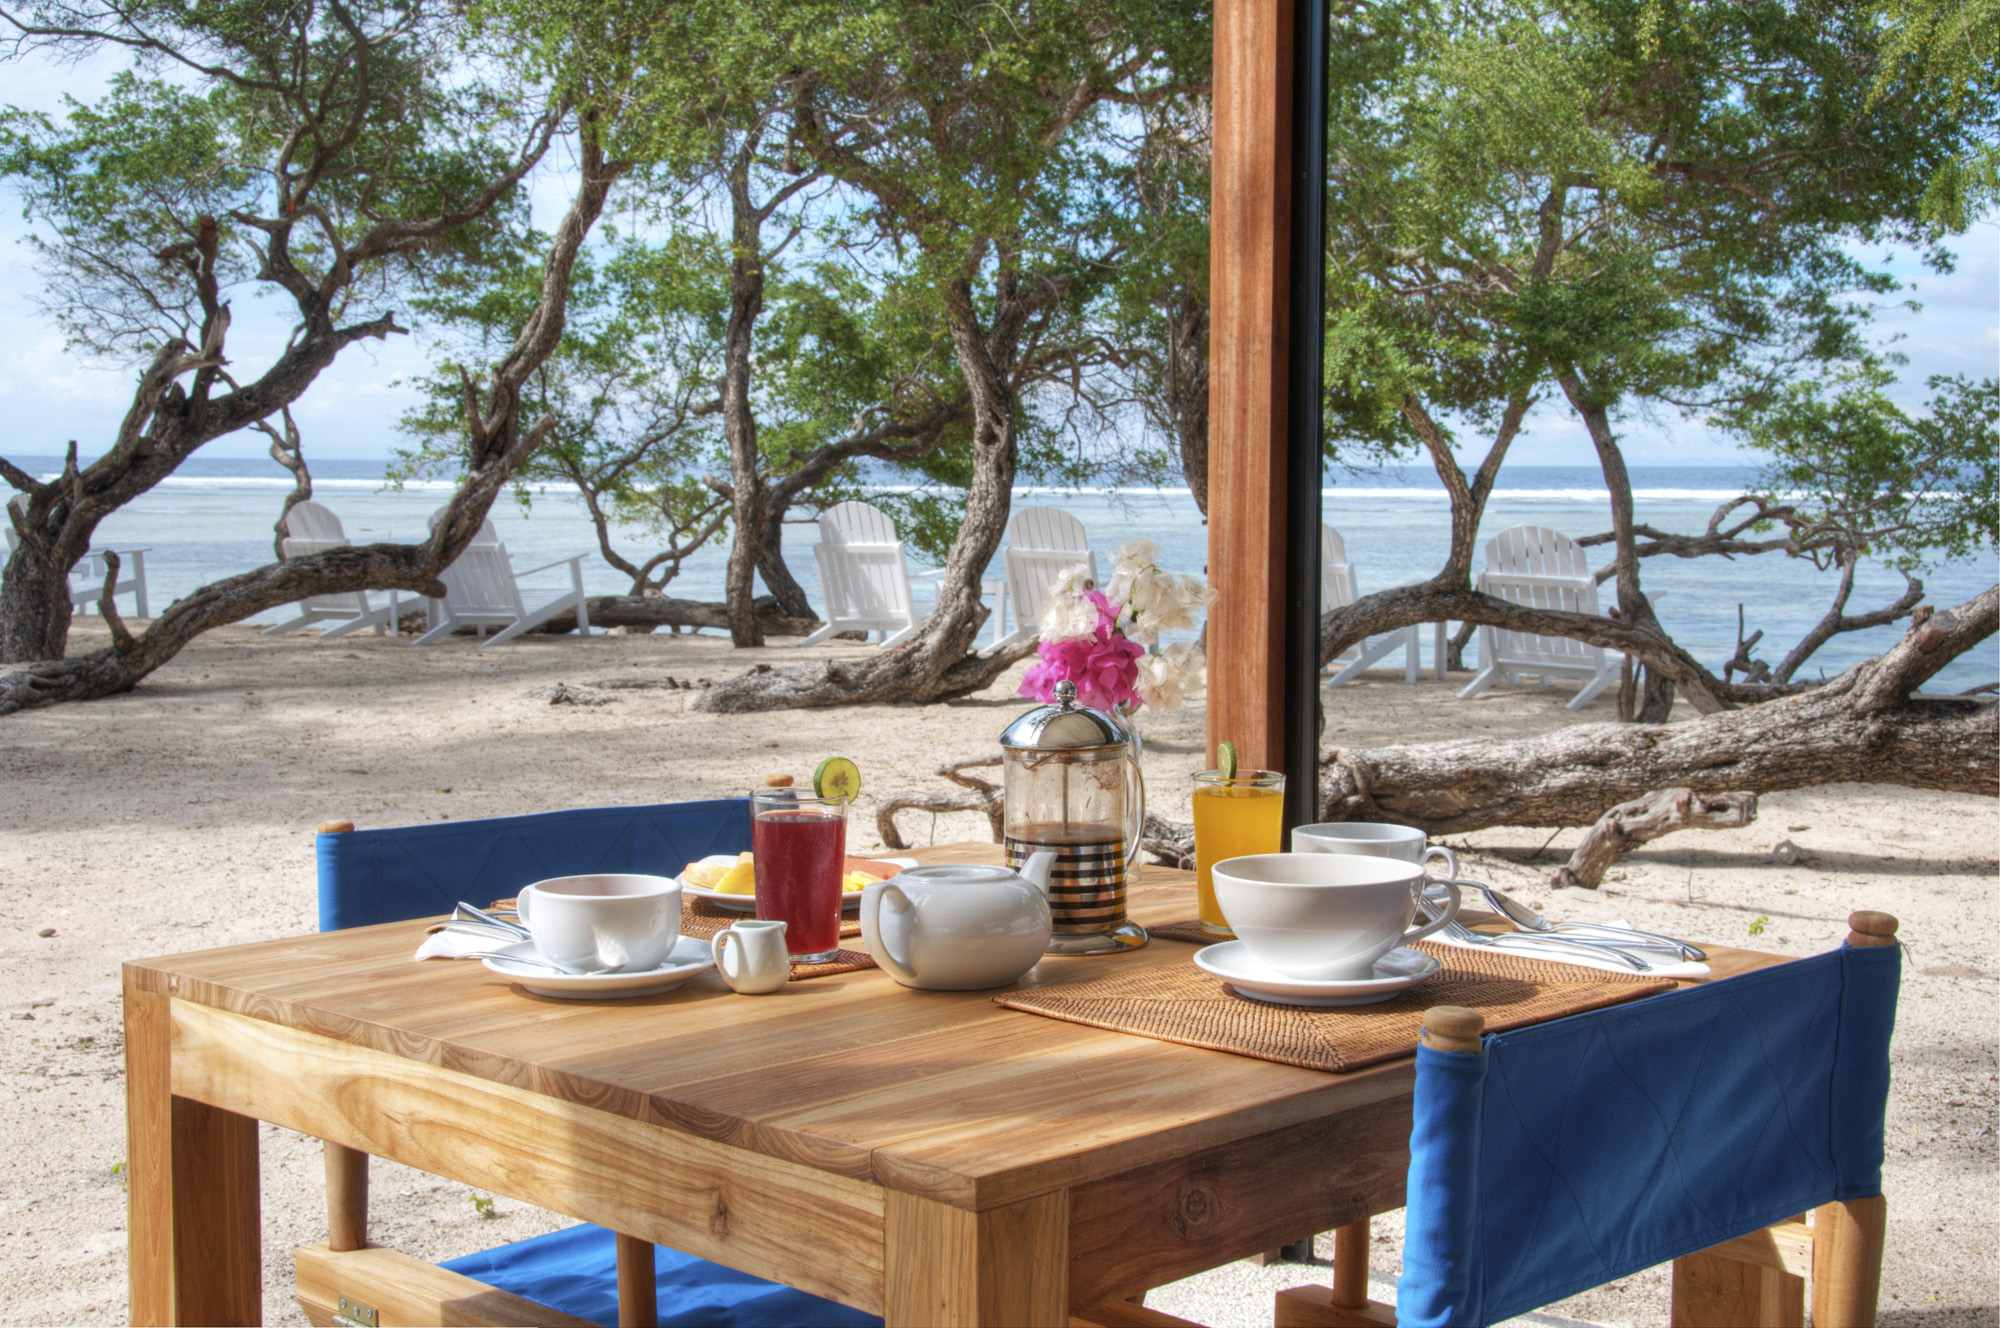 Gili Teak beachfront breakfast